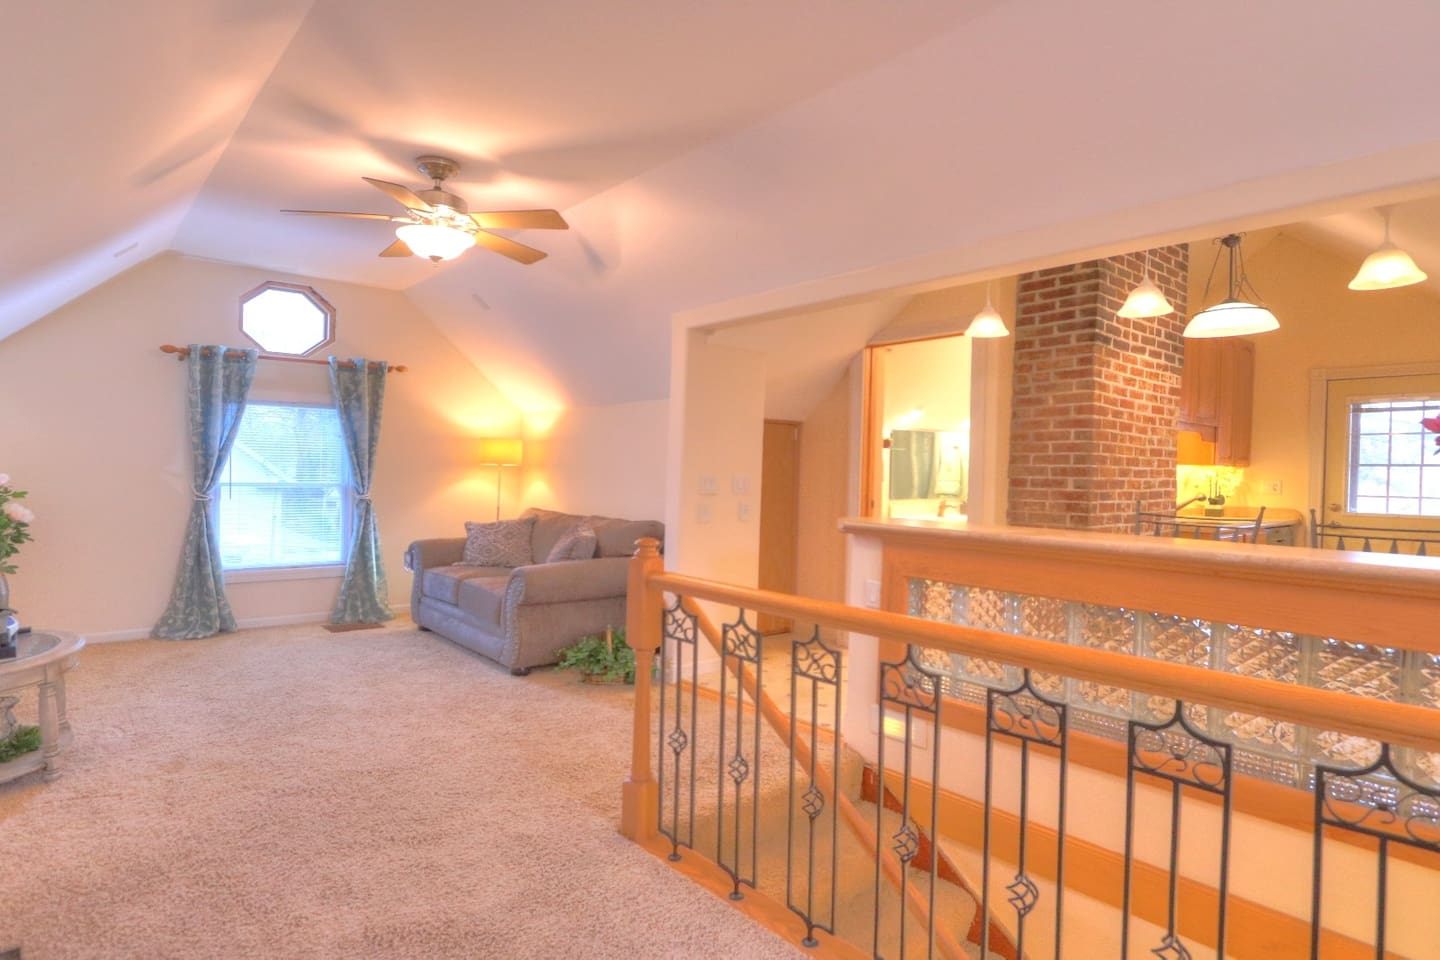 Lovely, spacious, private 1-bedroom apartment in lovely home in Champaign